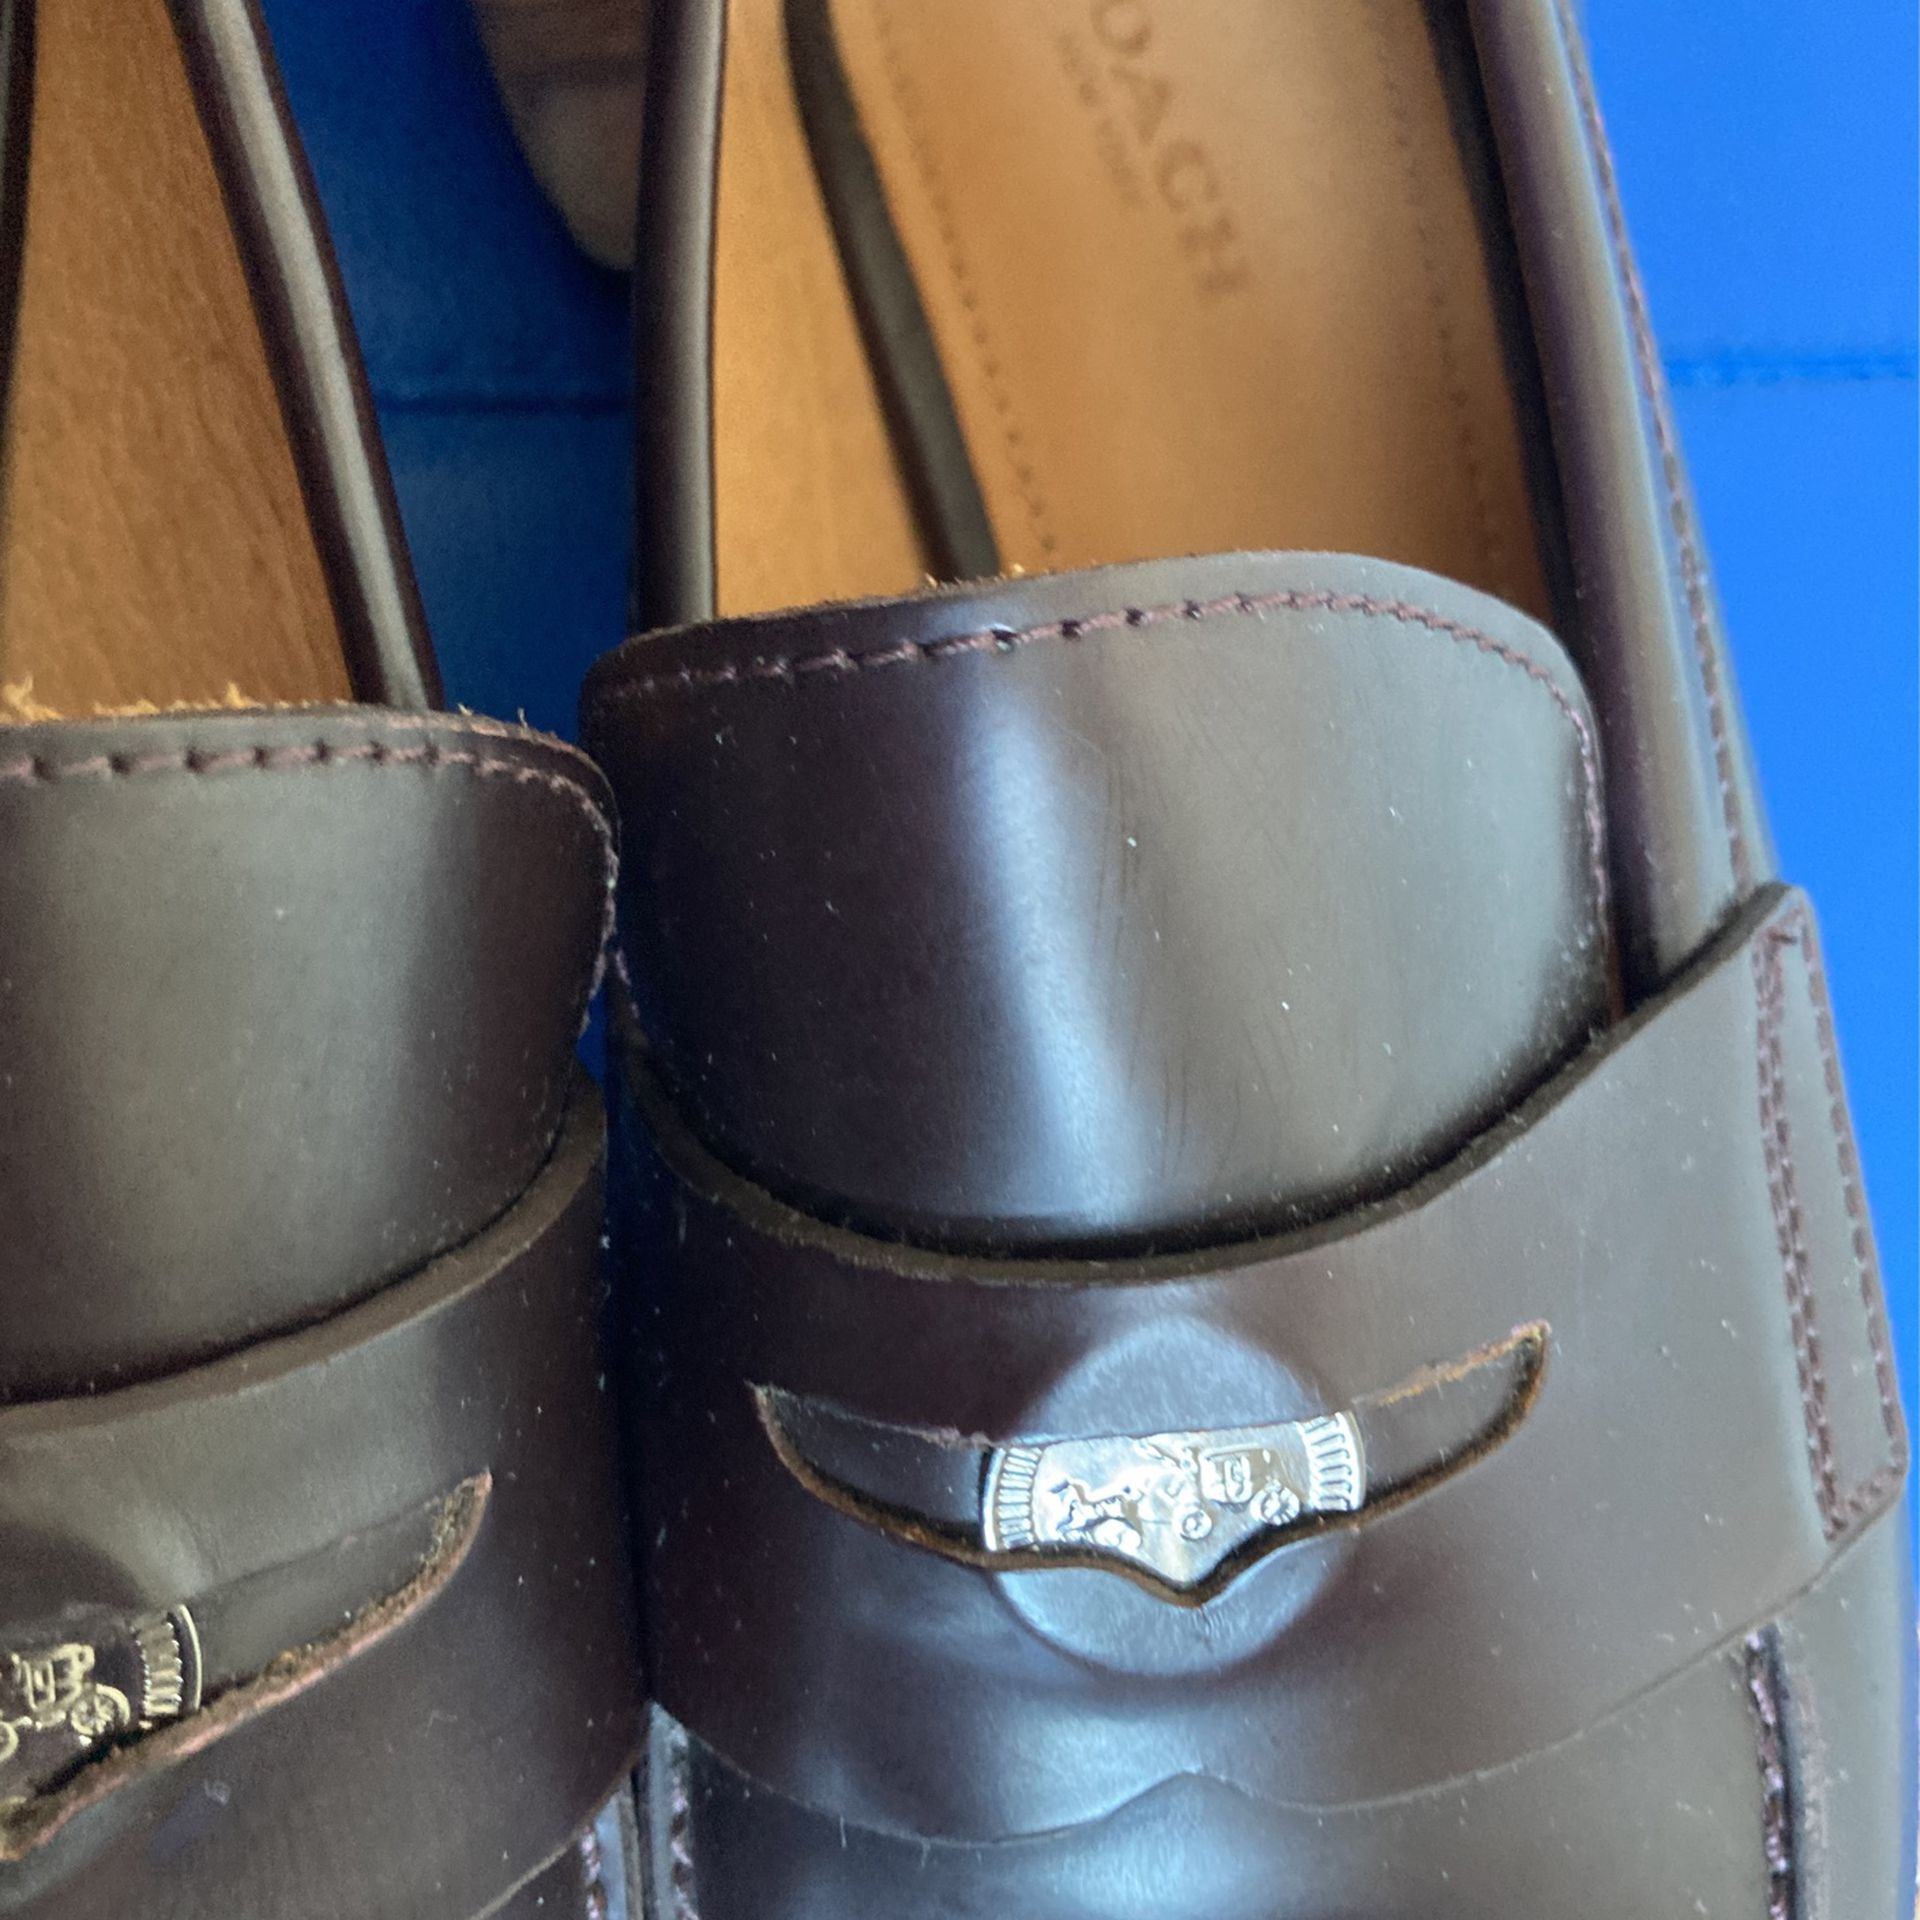 Women's Coach Loafers 8.5 B/Brown-NEW